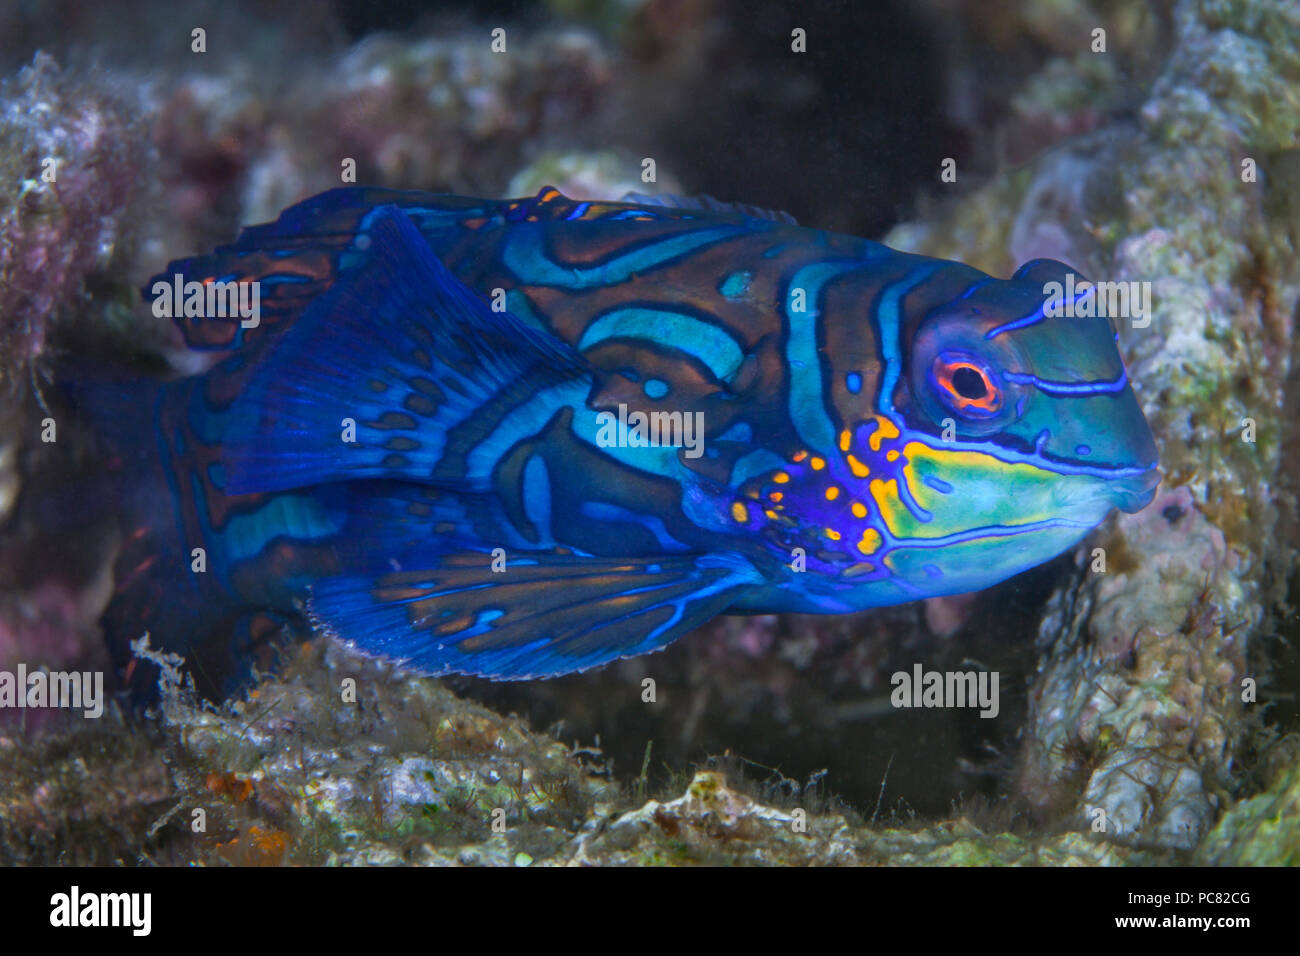 Close up image of a Mandarinfish (Synchiropus Splendidus), in coral rubble. Lembeh Straits, Indonesia. Stock Photo